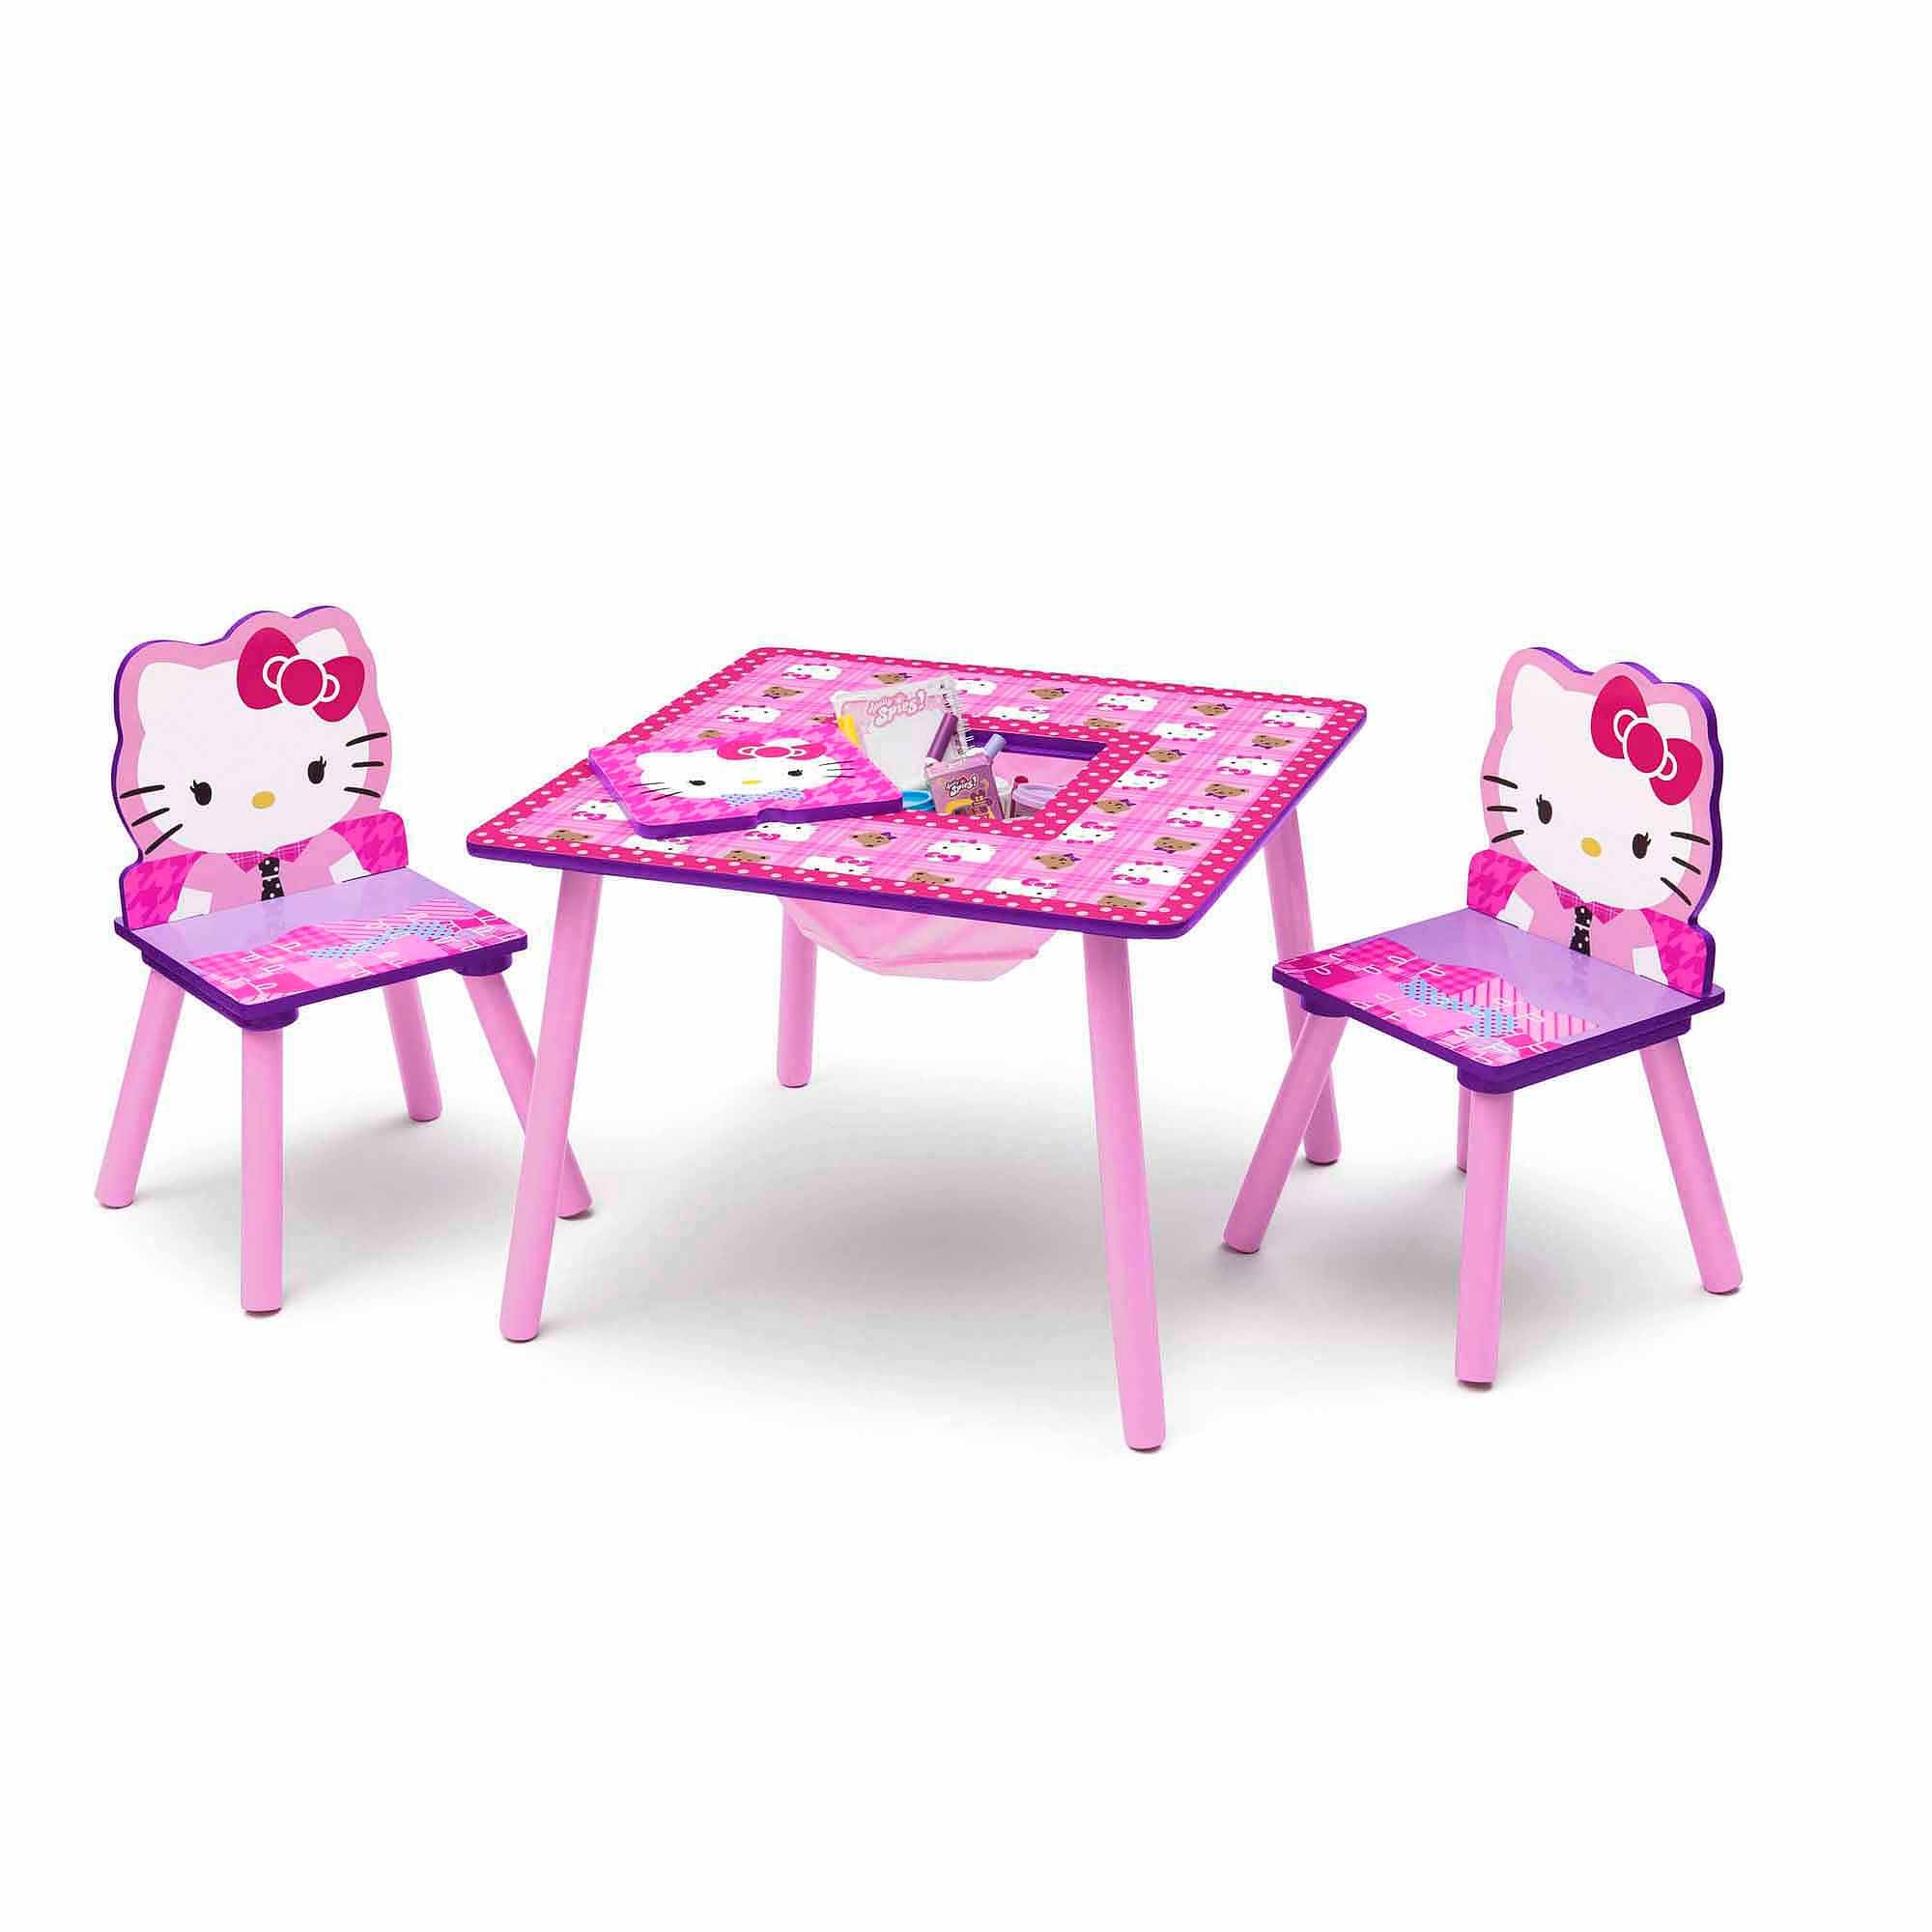 Hello Kitty Toddler Table And Chair Set With Storage